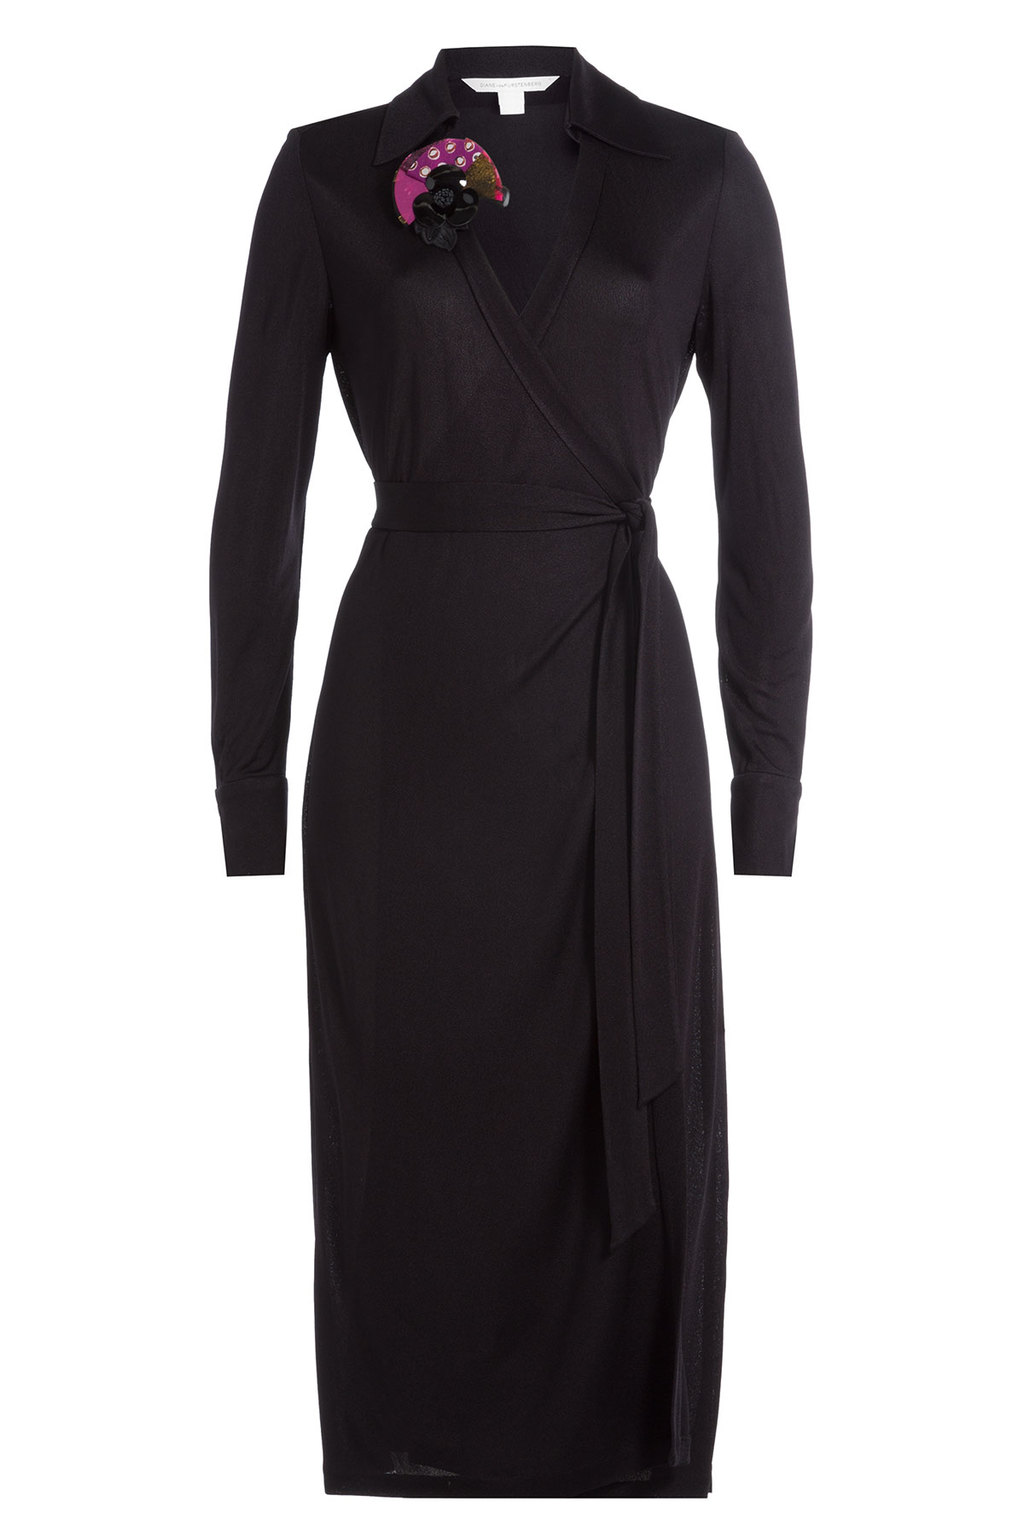 Wrap Dress With Printed Corsage Black - style: faux wrap/wrap; length: below the knee; neckline: shirt collar/peter pan/zip with opening; pattern: plain; waist detail: belted waist/tie at waist/drawstring; predominant colour: black; occasions: evening; fit: body skimming; fibres: viscose/rayon - 100%; sleeve length: long sleeve; sleeve style: standard; pattern type: fabric; texture group: jersey - stretchy/drapey; season: a/w 2016; wardrobe: event